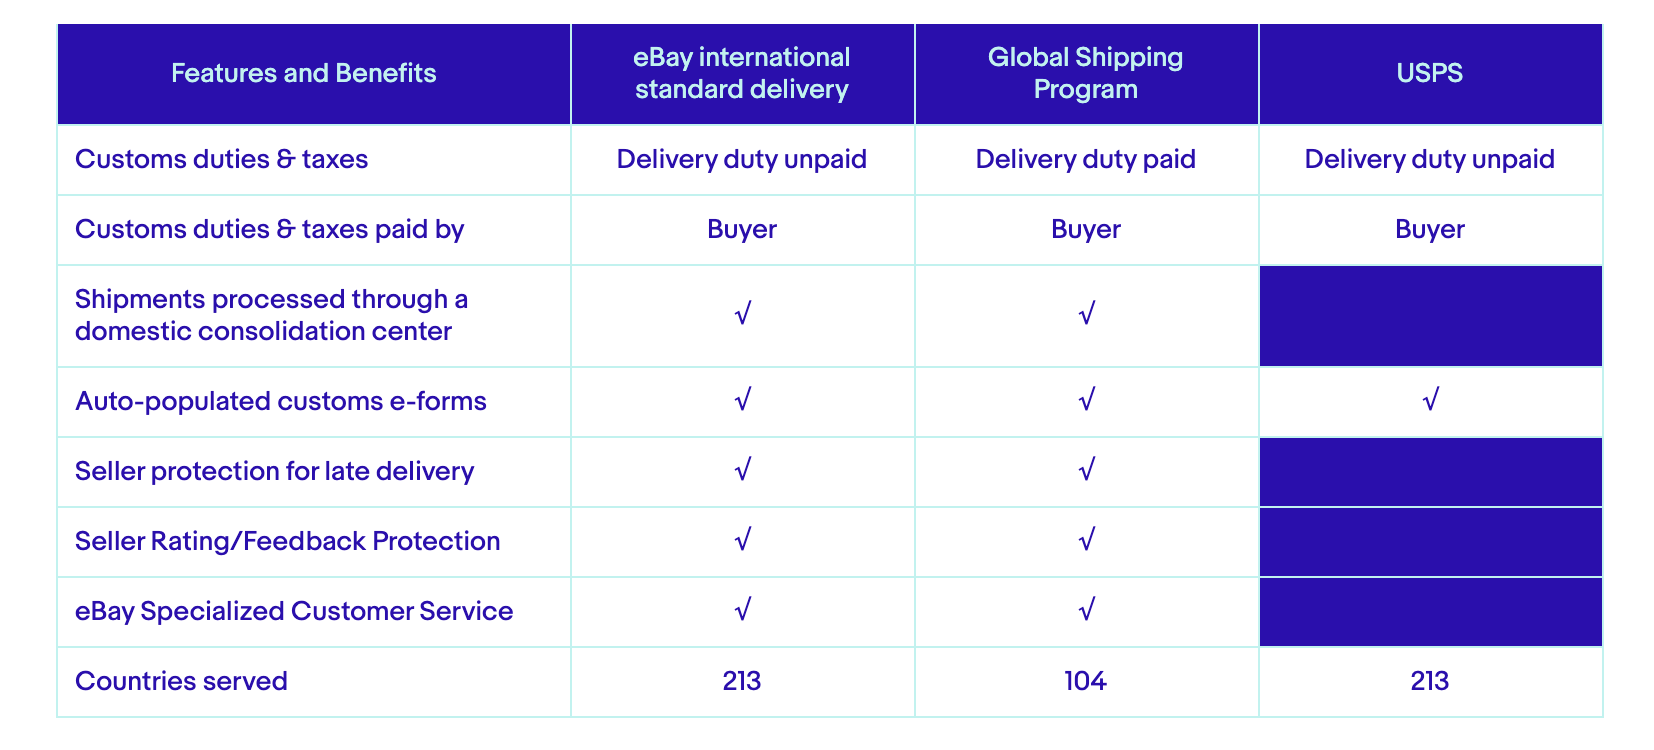 ebay international standard shipping comparison